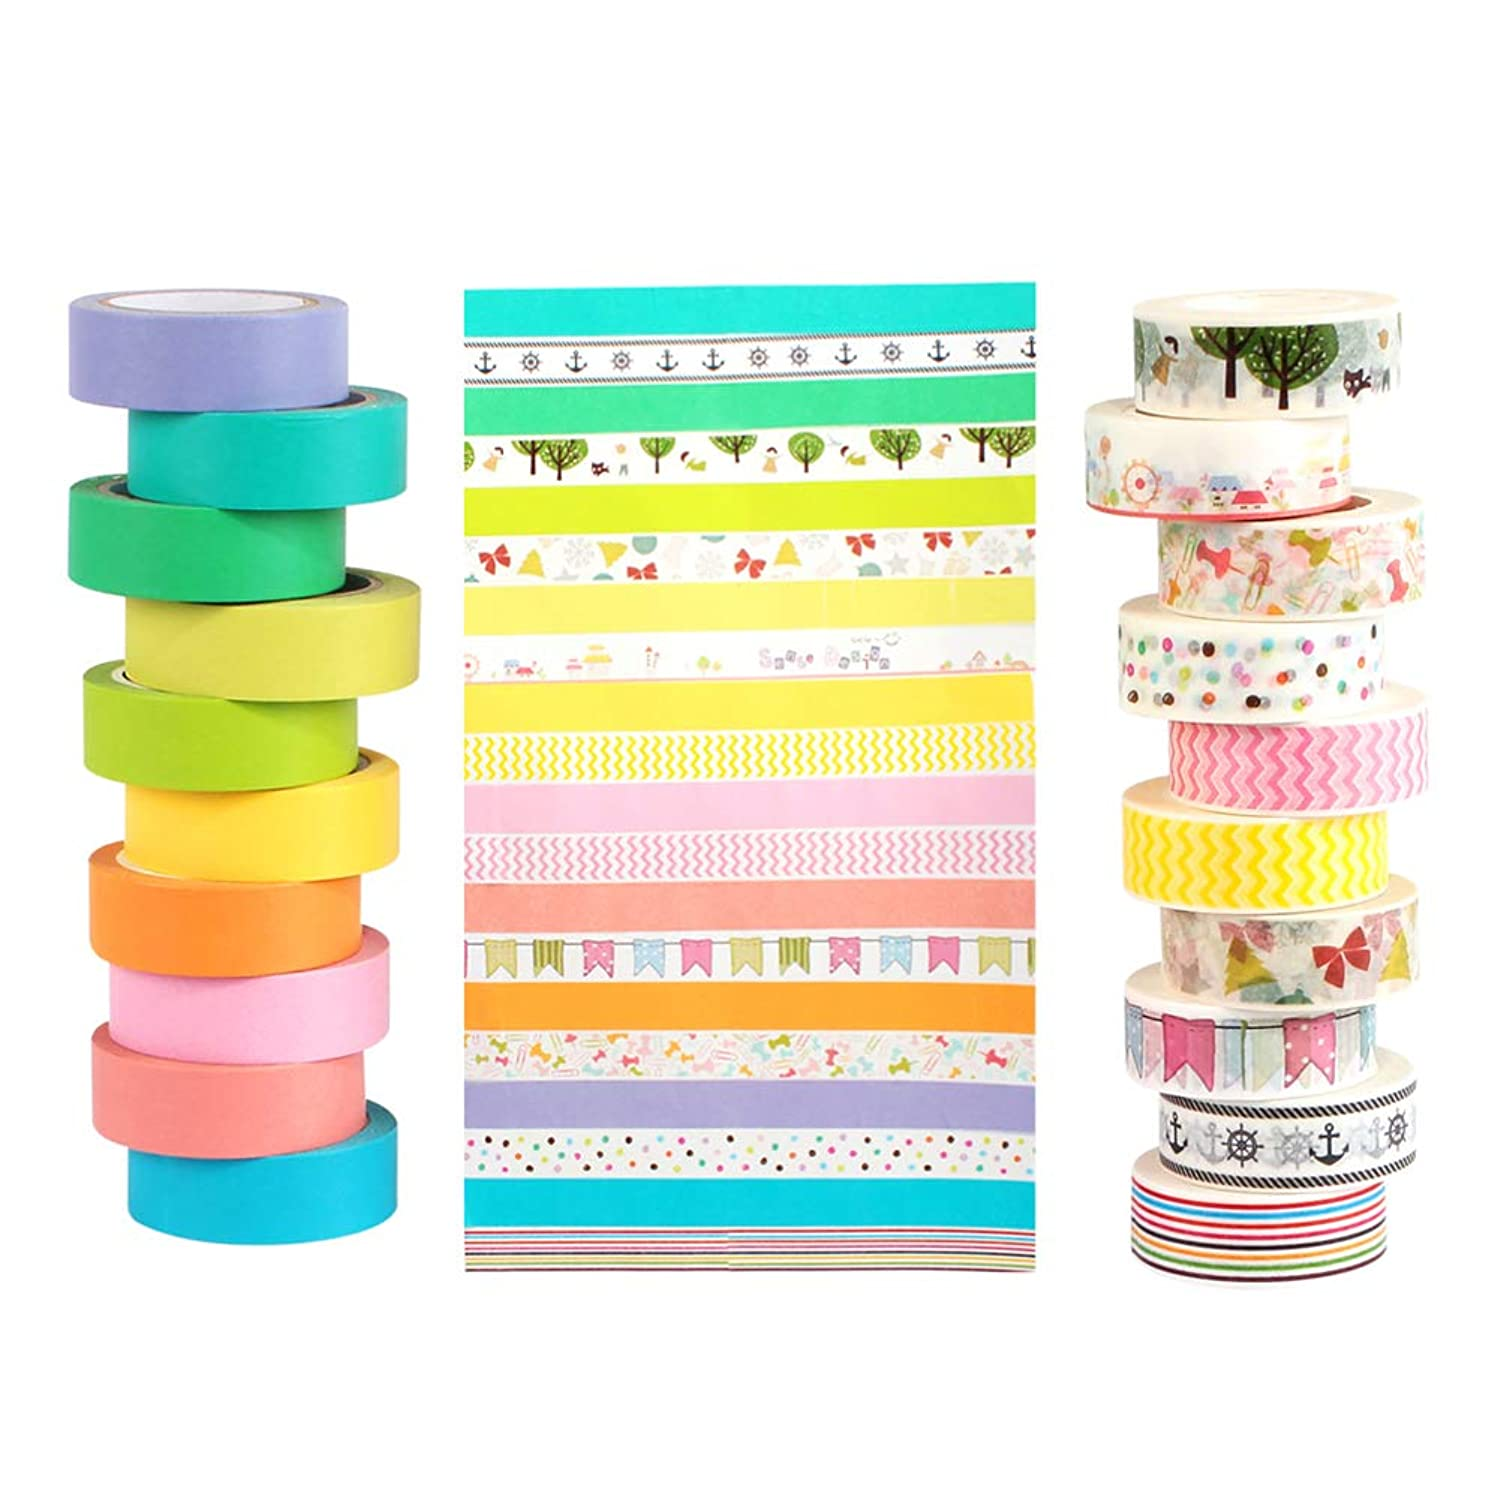 Recollections Washi Tape Set, Foil Gold Cute Decorative Masking DIY Washi Tape Craft 20 Wide Rolls for Bullet Journal Planner Stickers